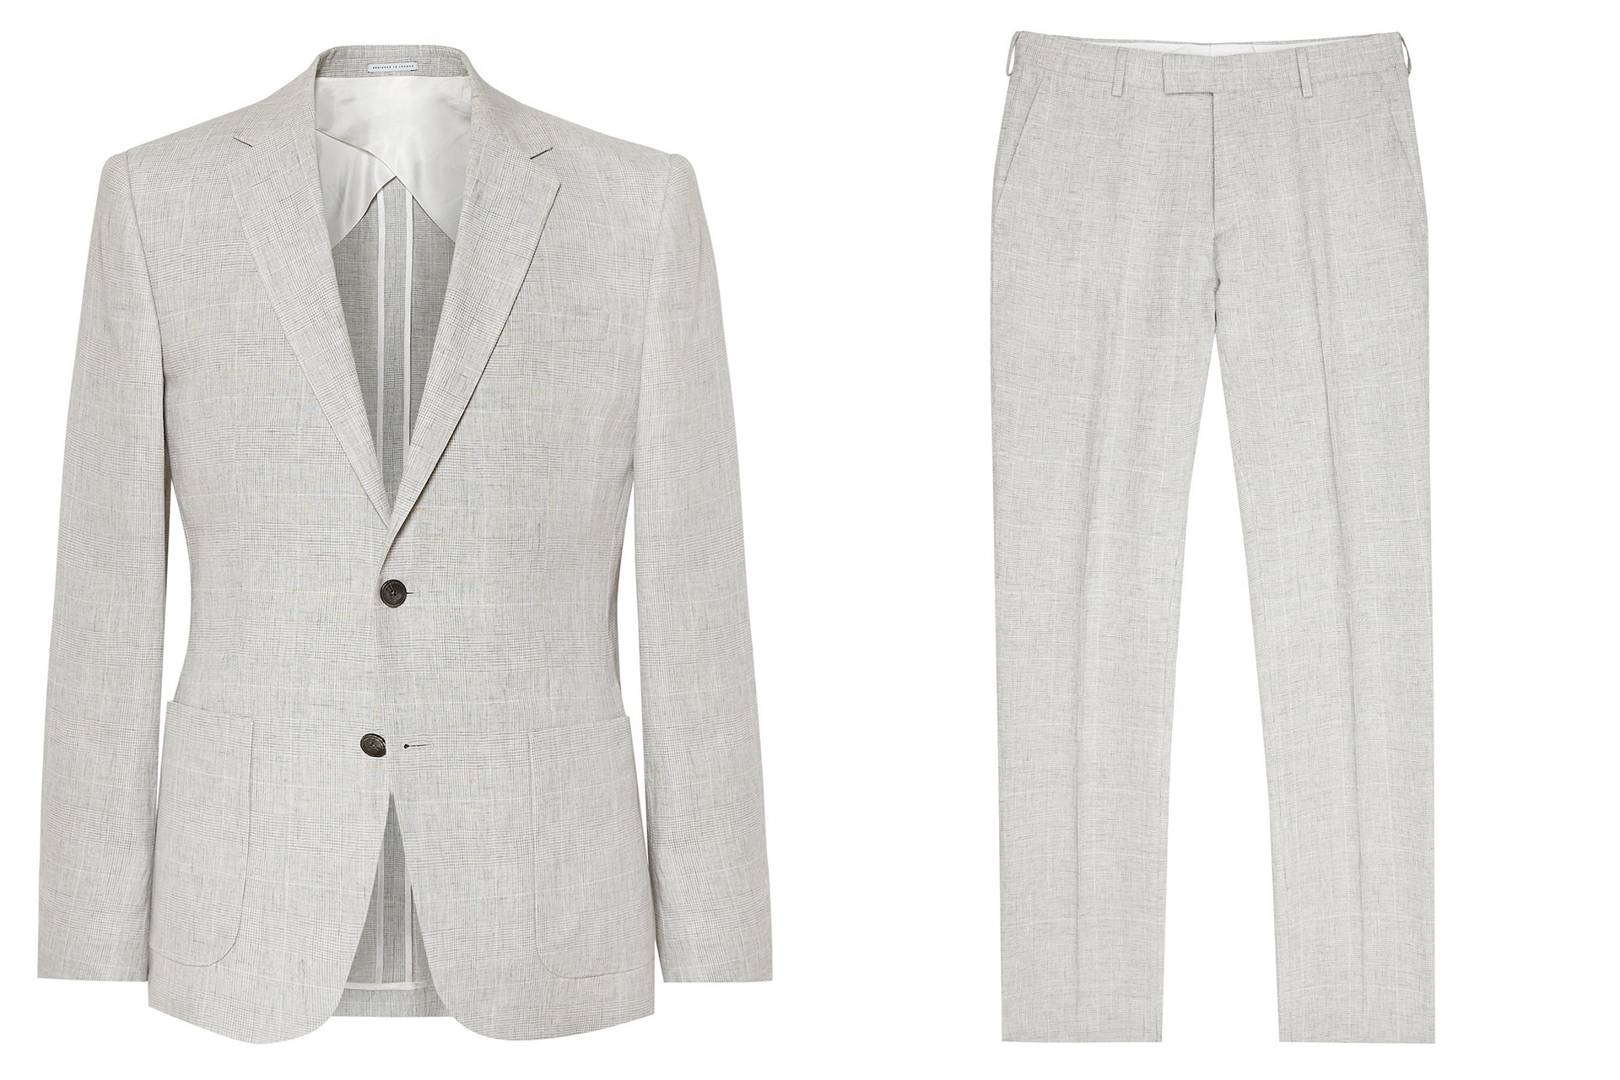 e81546a7d The best linen suits for men | British GQ